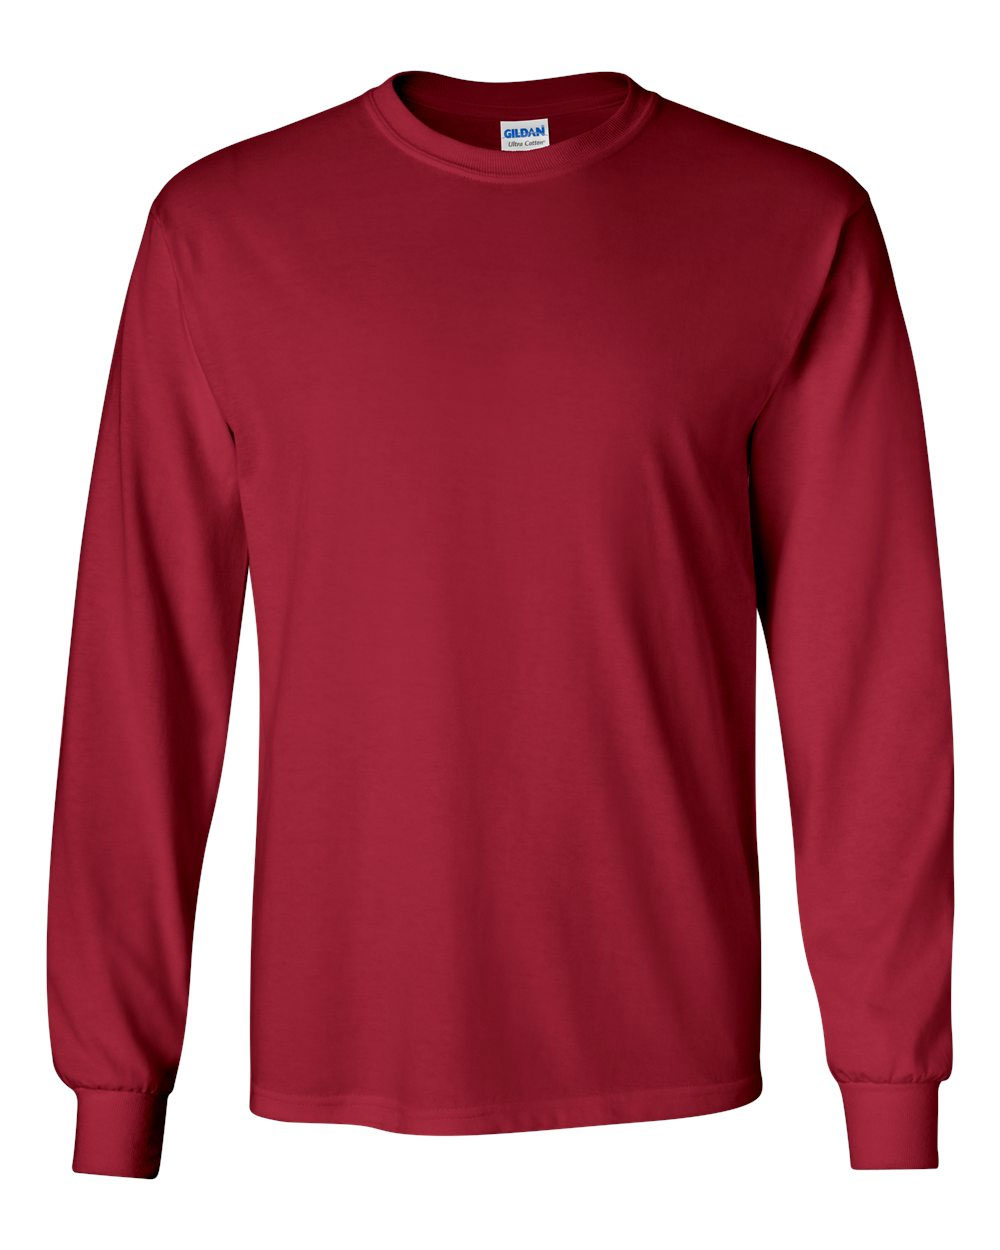 Gildan Adult Ultra Cotton® Long Sleeve T-Shirt